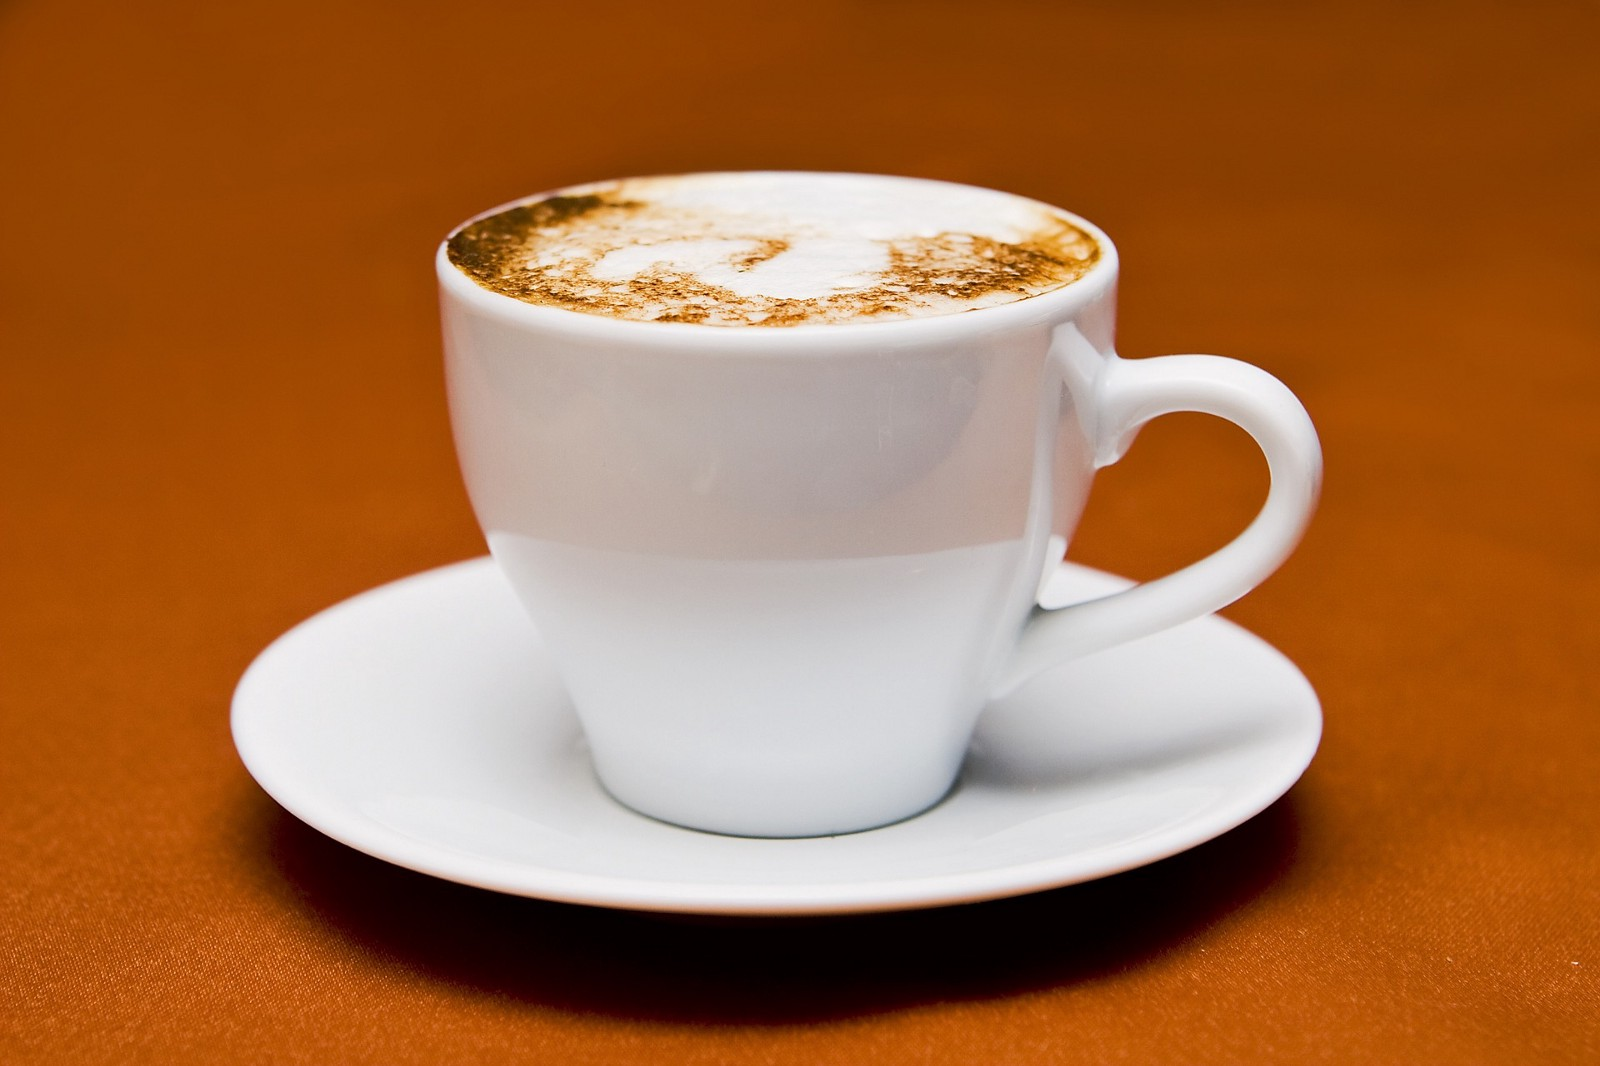 Scientists: 4 cups of coffee per day reduces the risk of death